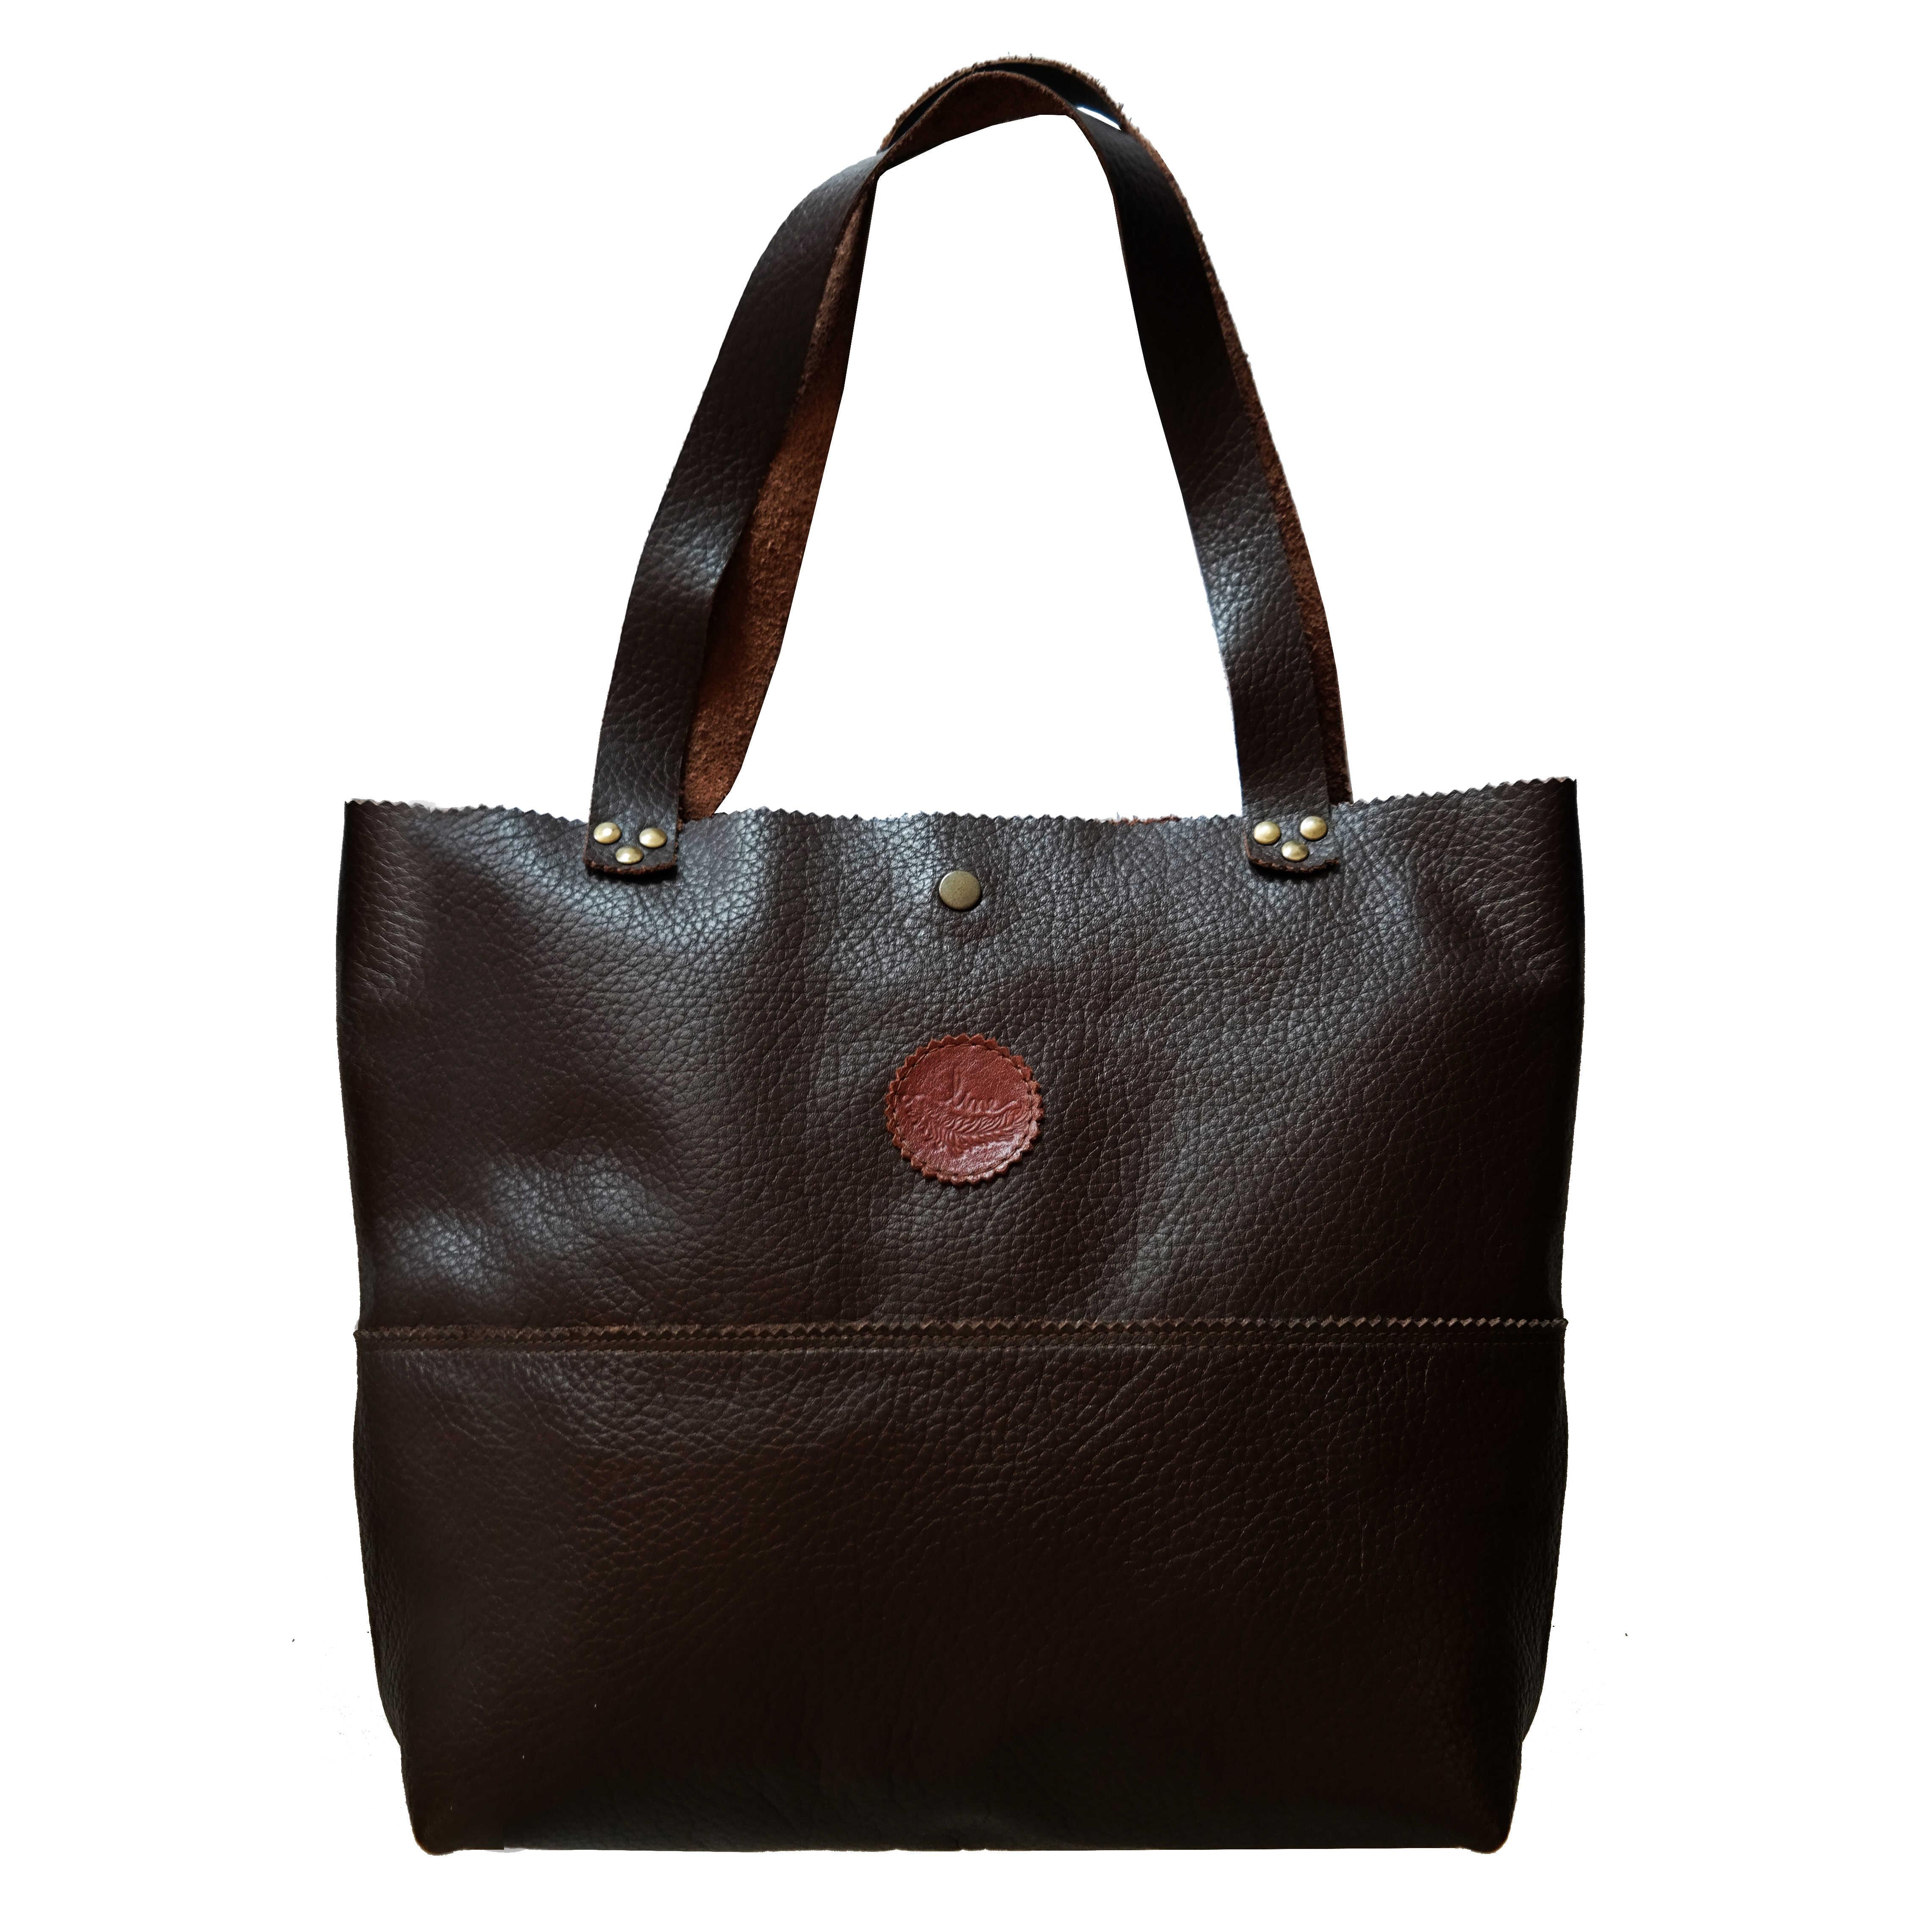 Shopping Bag Couro Floater Marrom